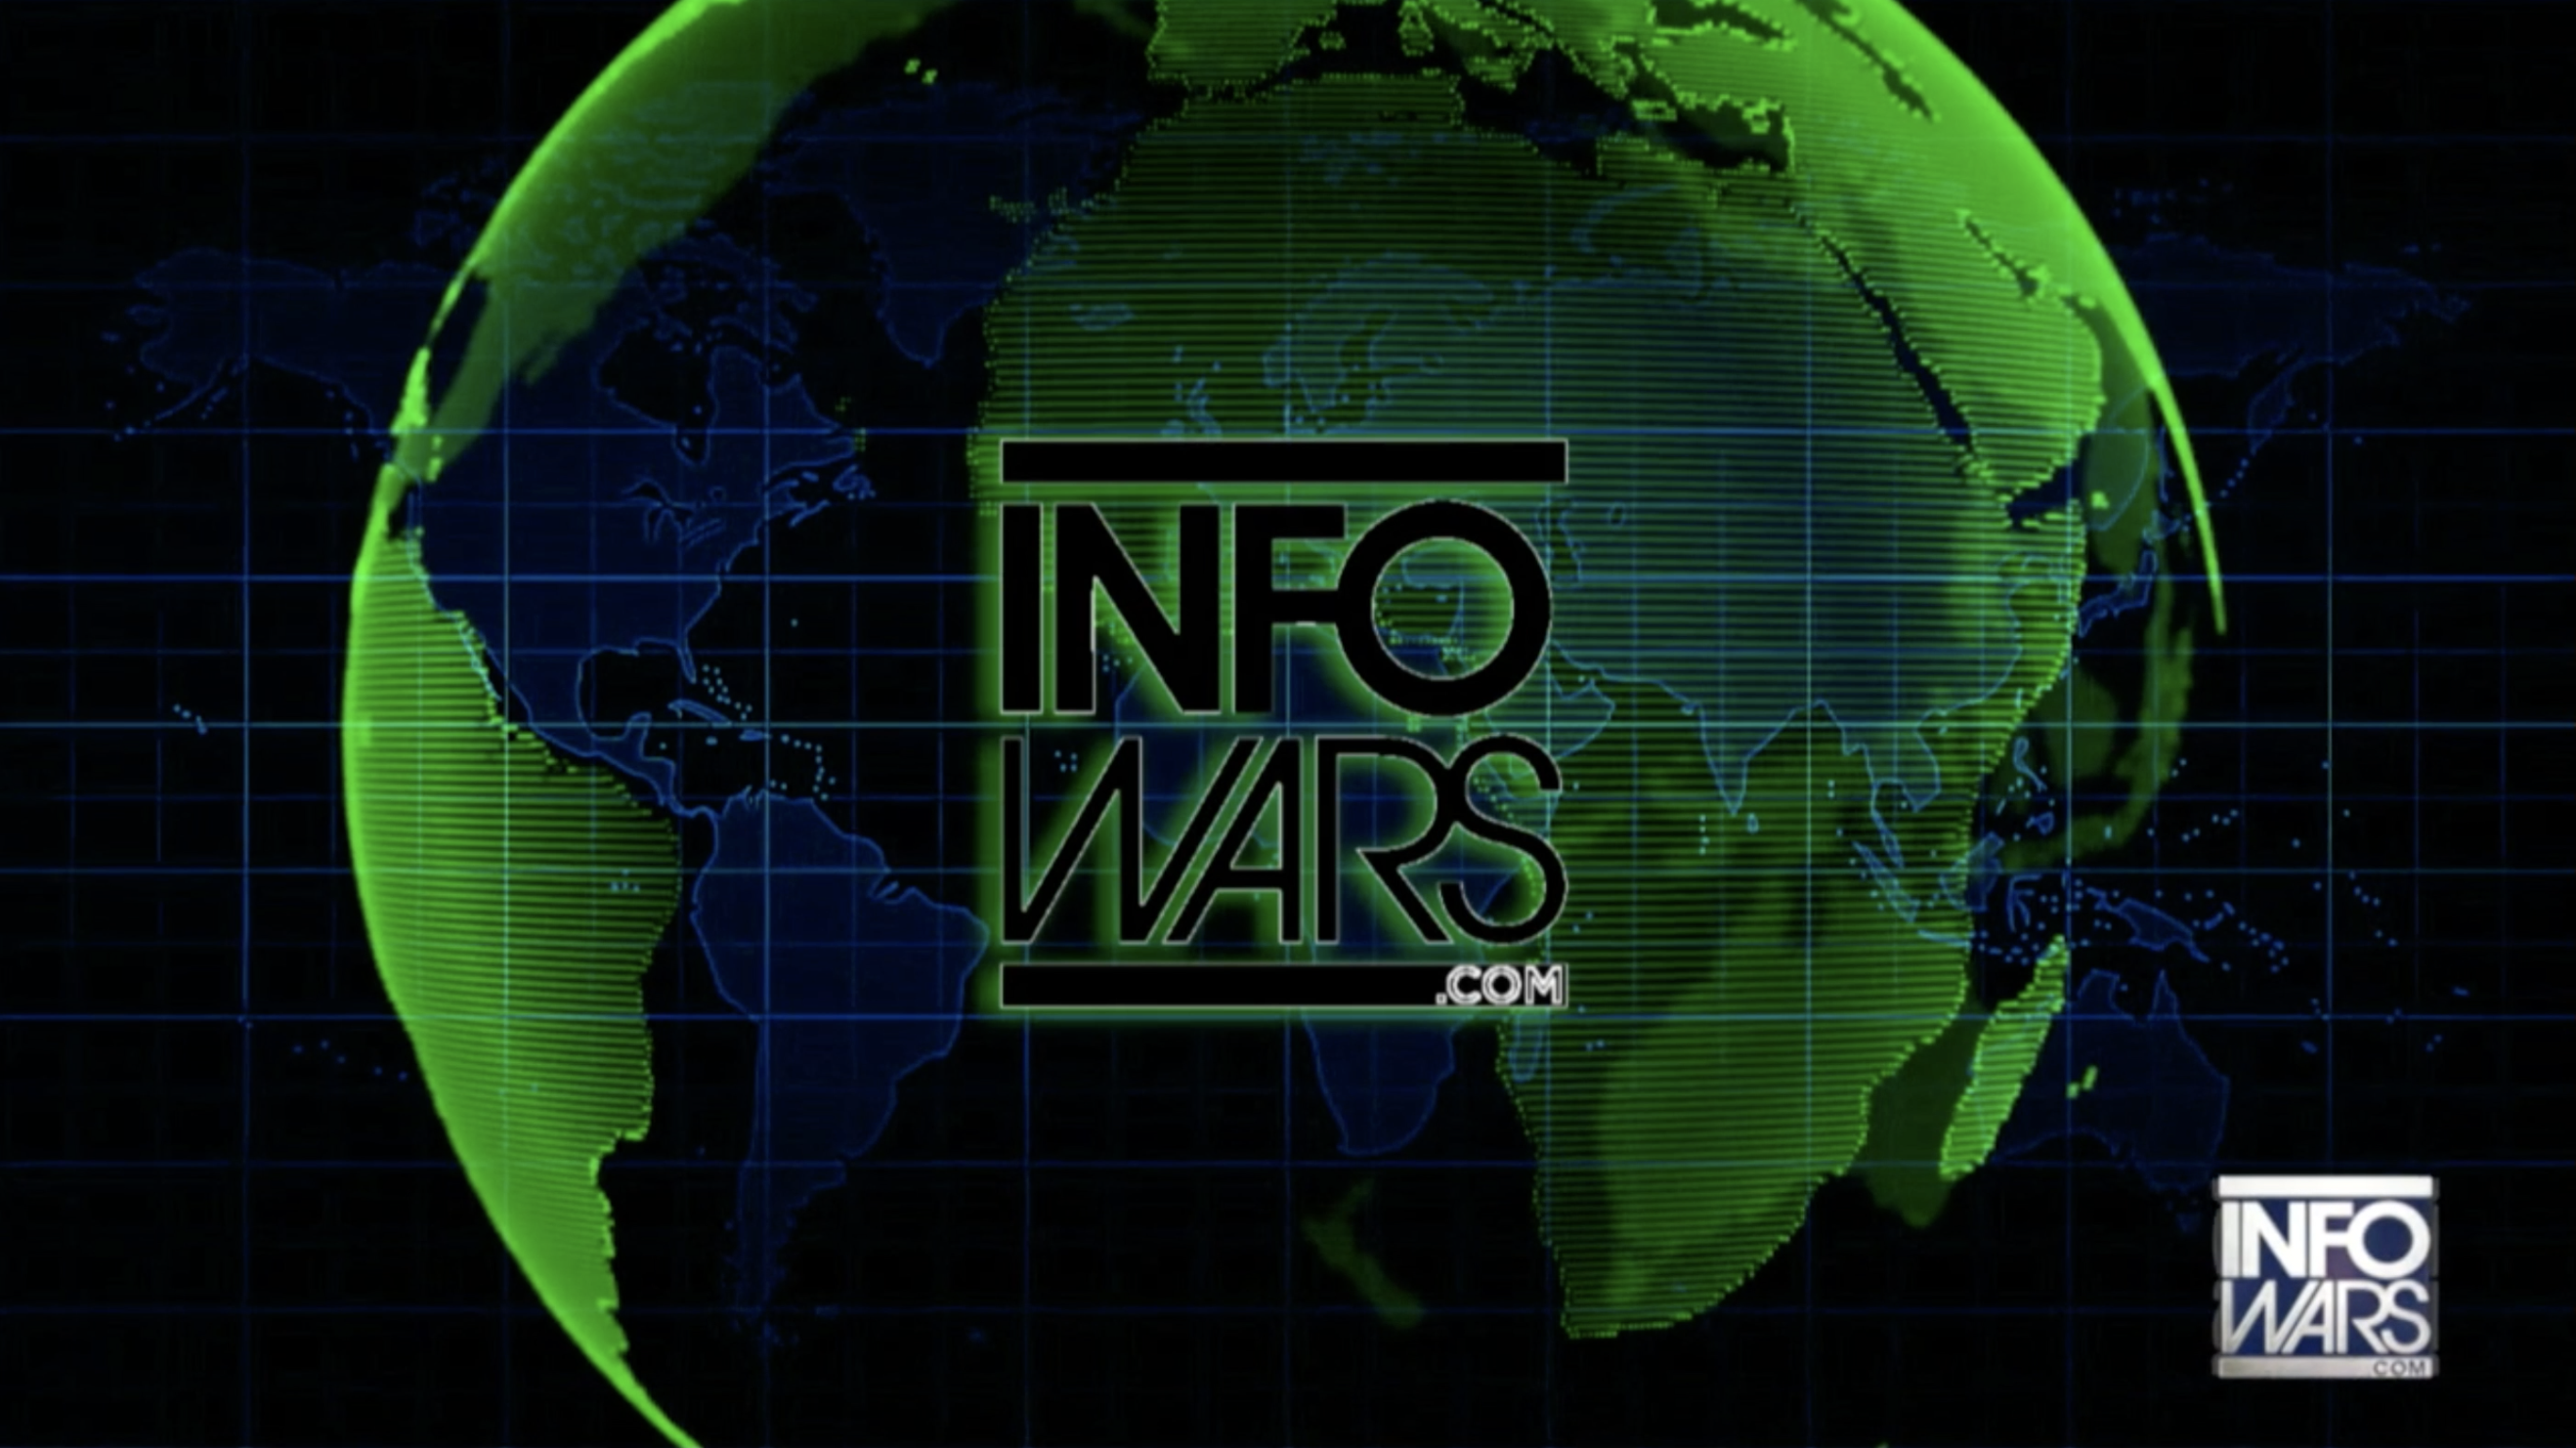 #AlexJones #INFOWARS POSTS AUGUST 1st 2019 Share Tomorrow's #News Today! #PatriotsDefeatGlobalists